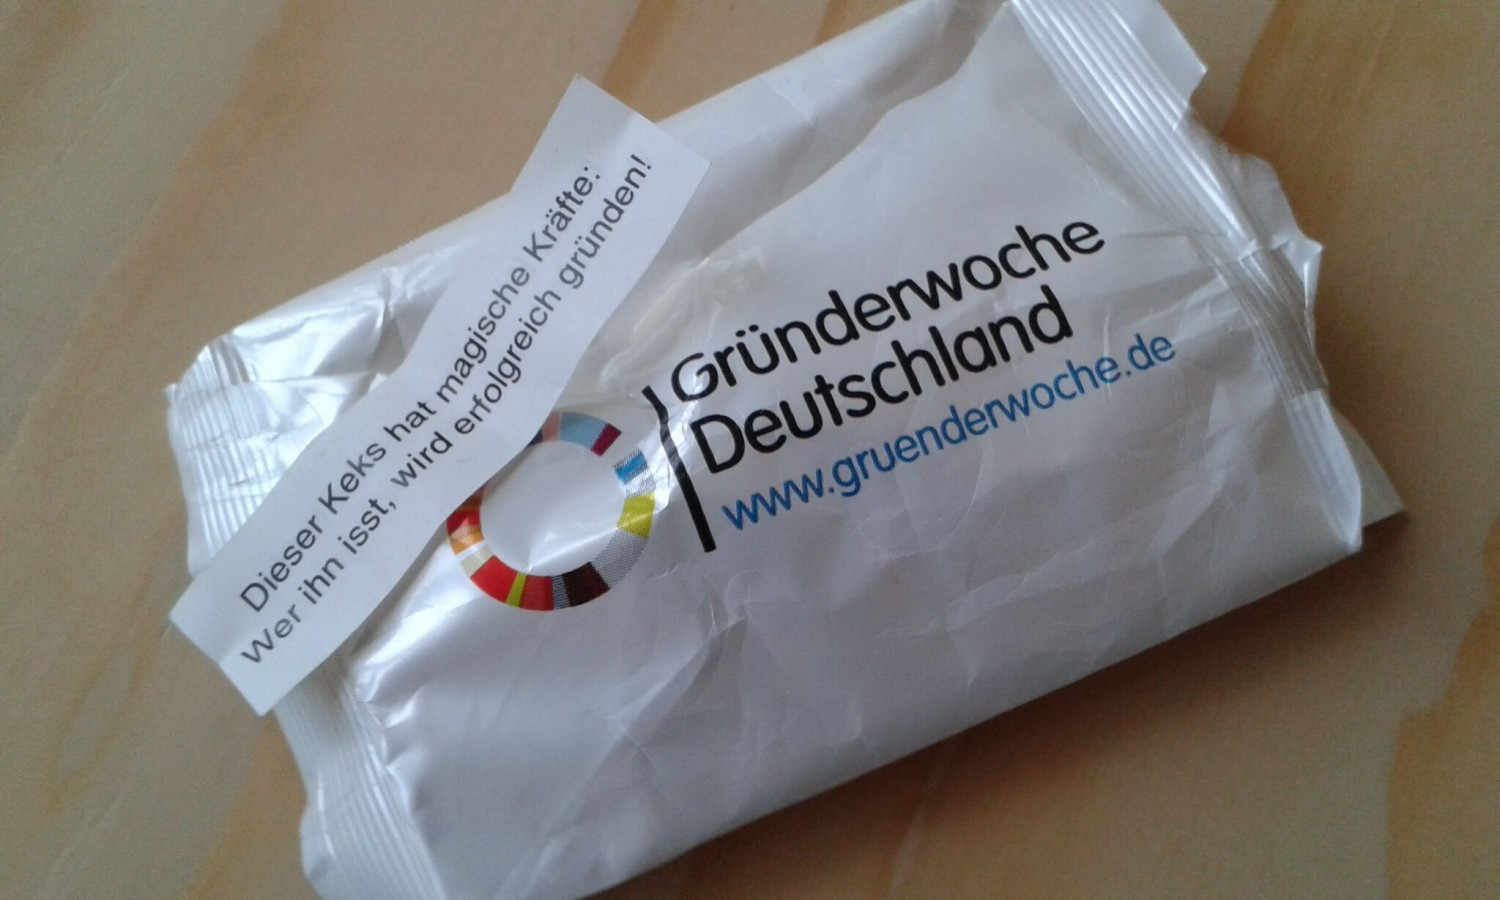 Gründerwoche - start-ups and the sweet, sweet taste of success.